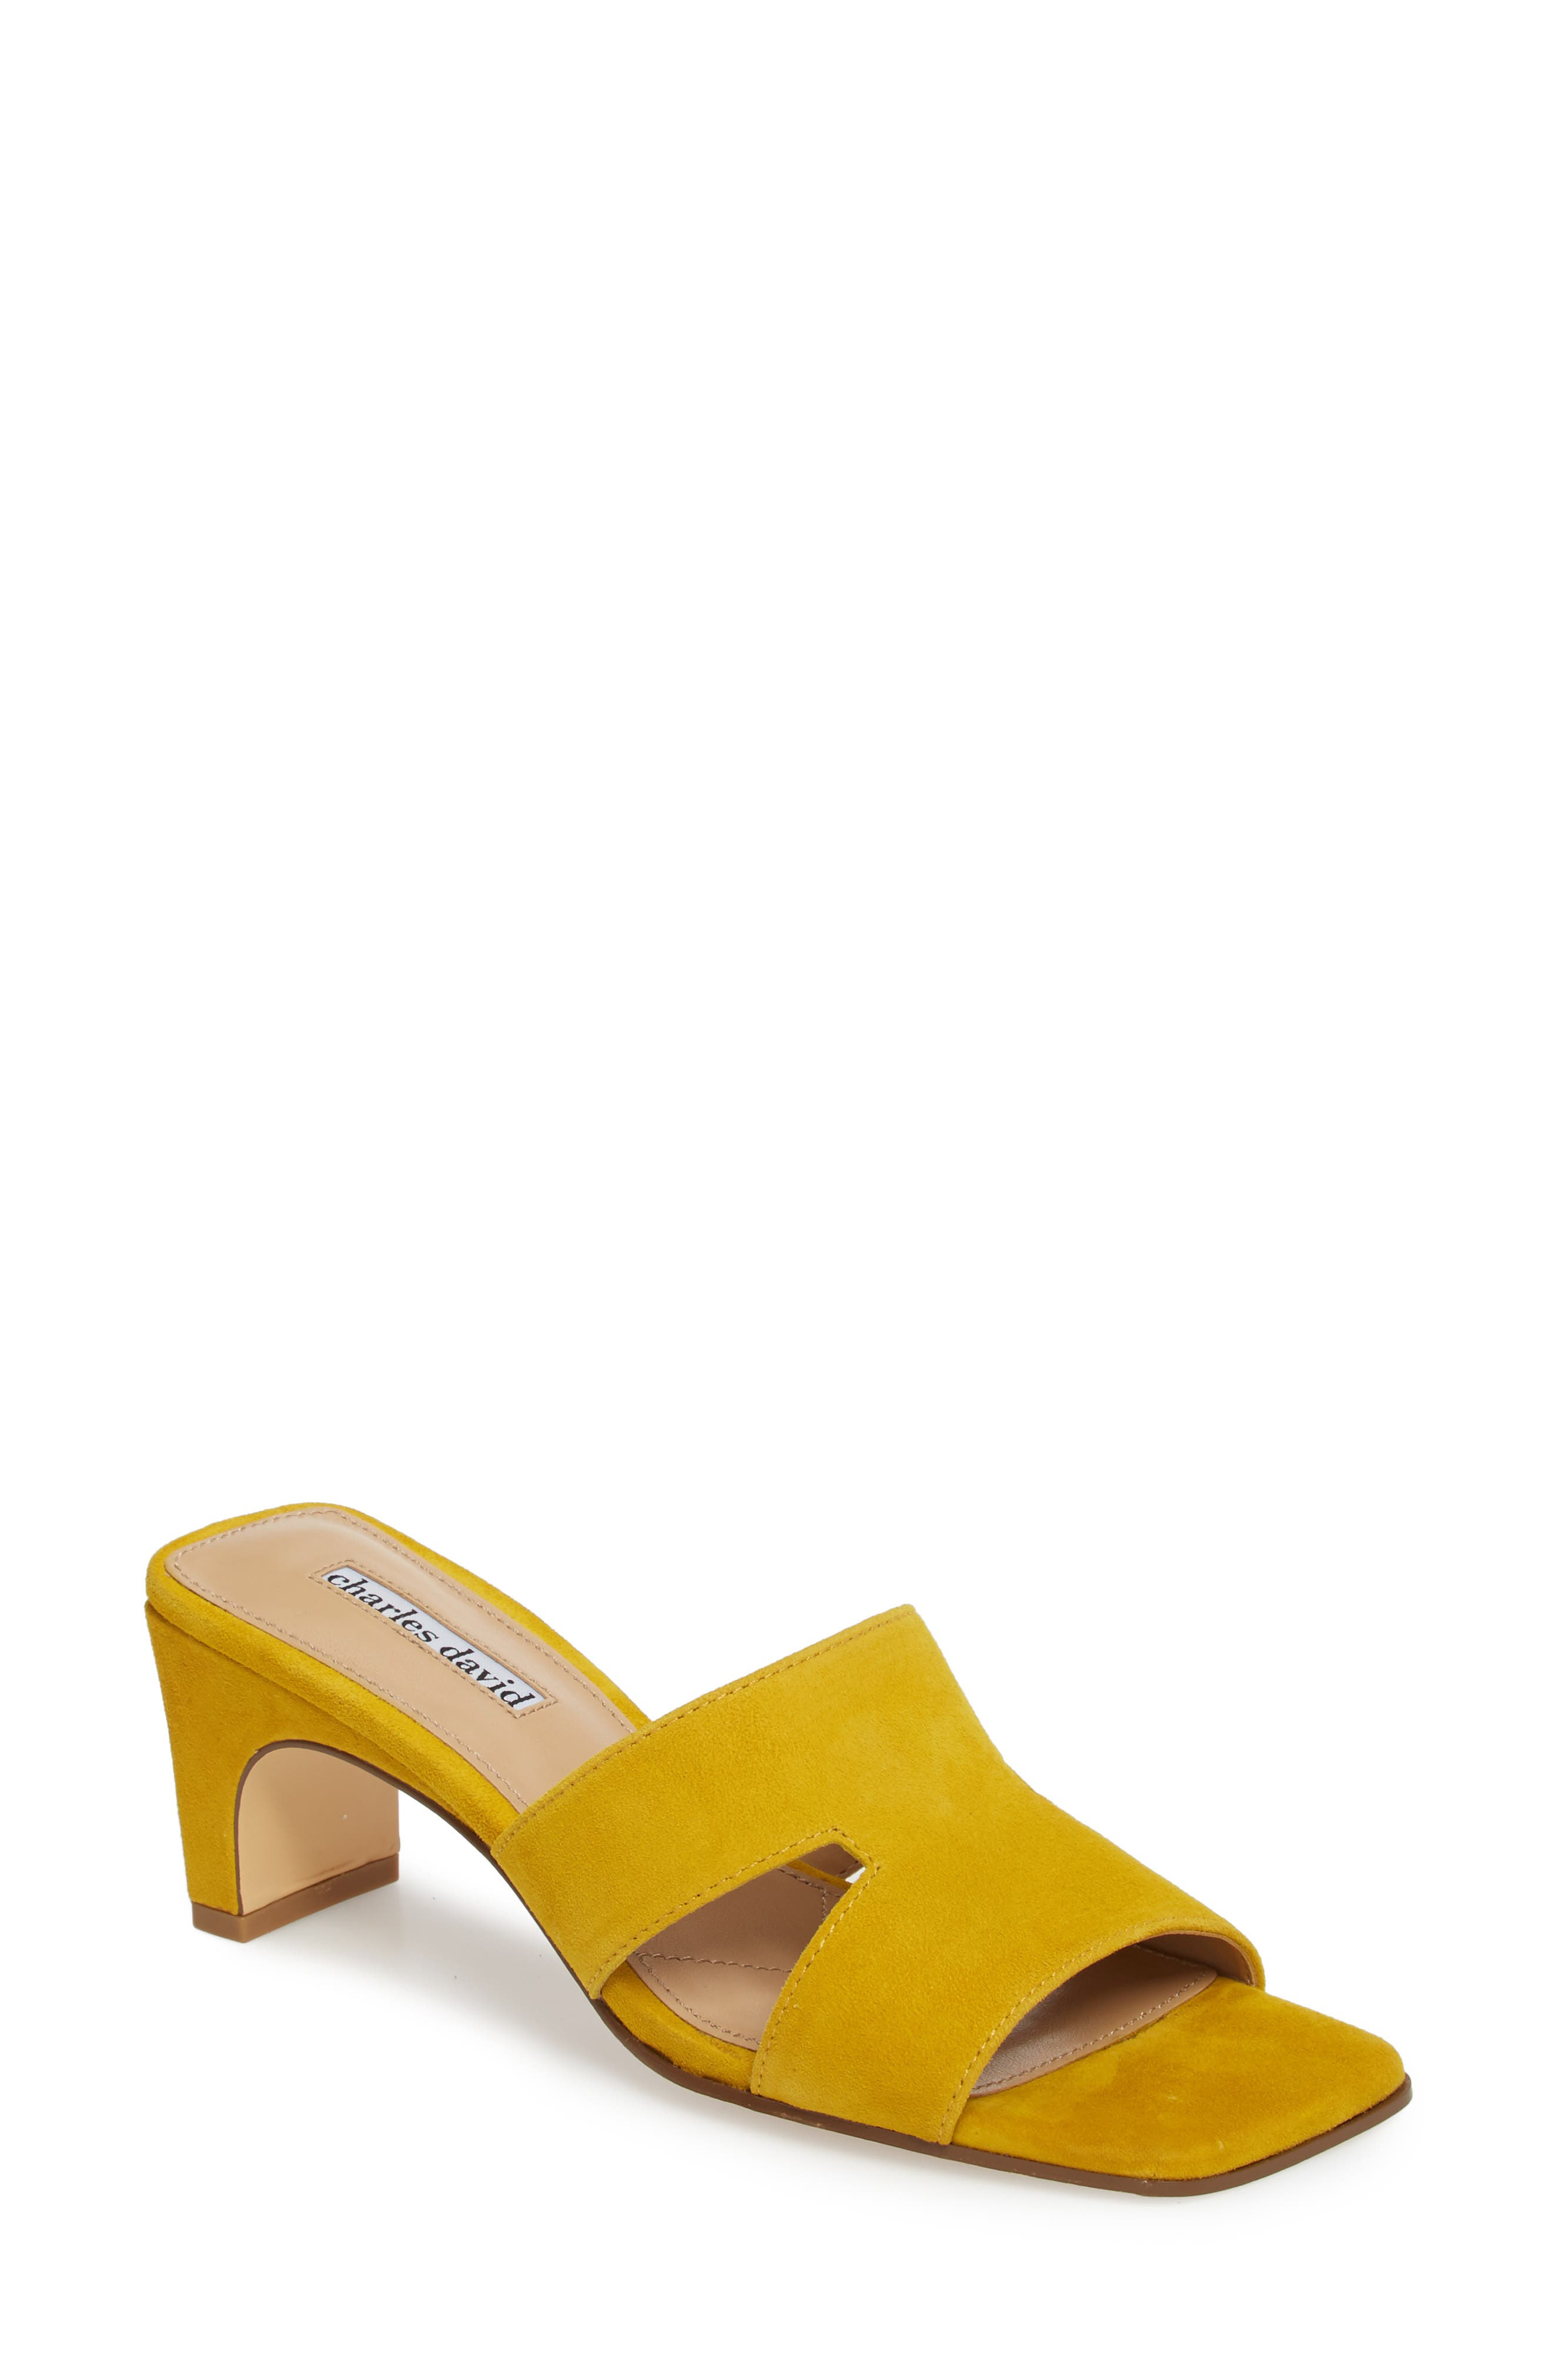 Harley Slide Sandal,                             Main thumbnail 1, color,                             Bright Yellow Suede